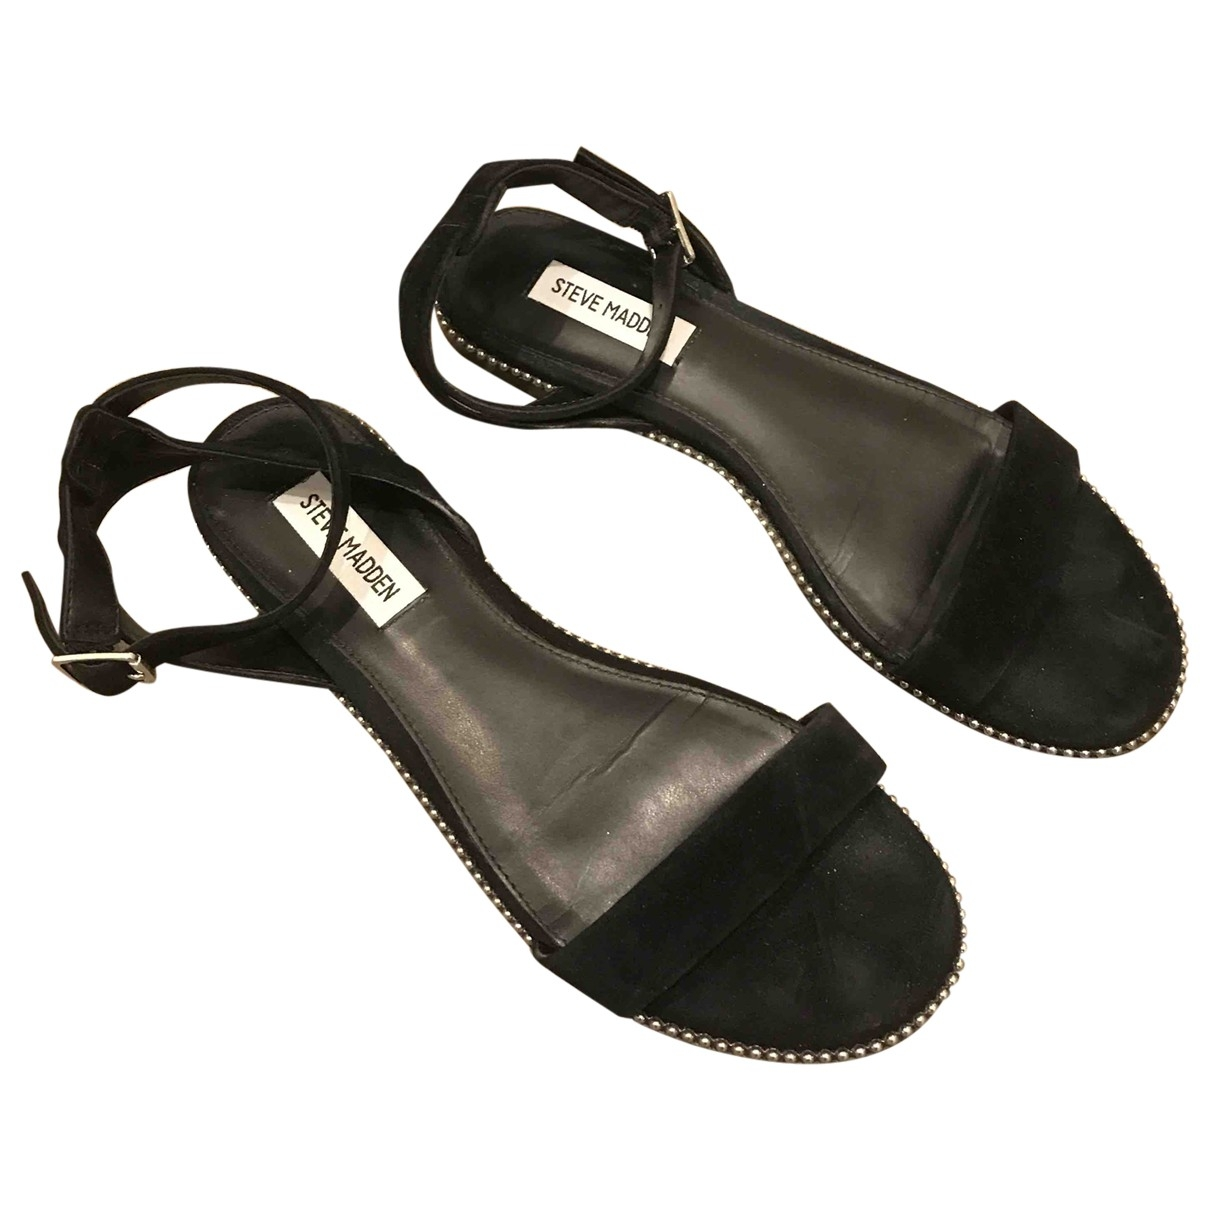 Steve Madden \N Black Suede Sandals for Women 40 EU